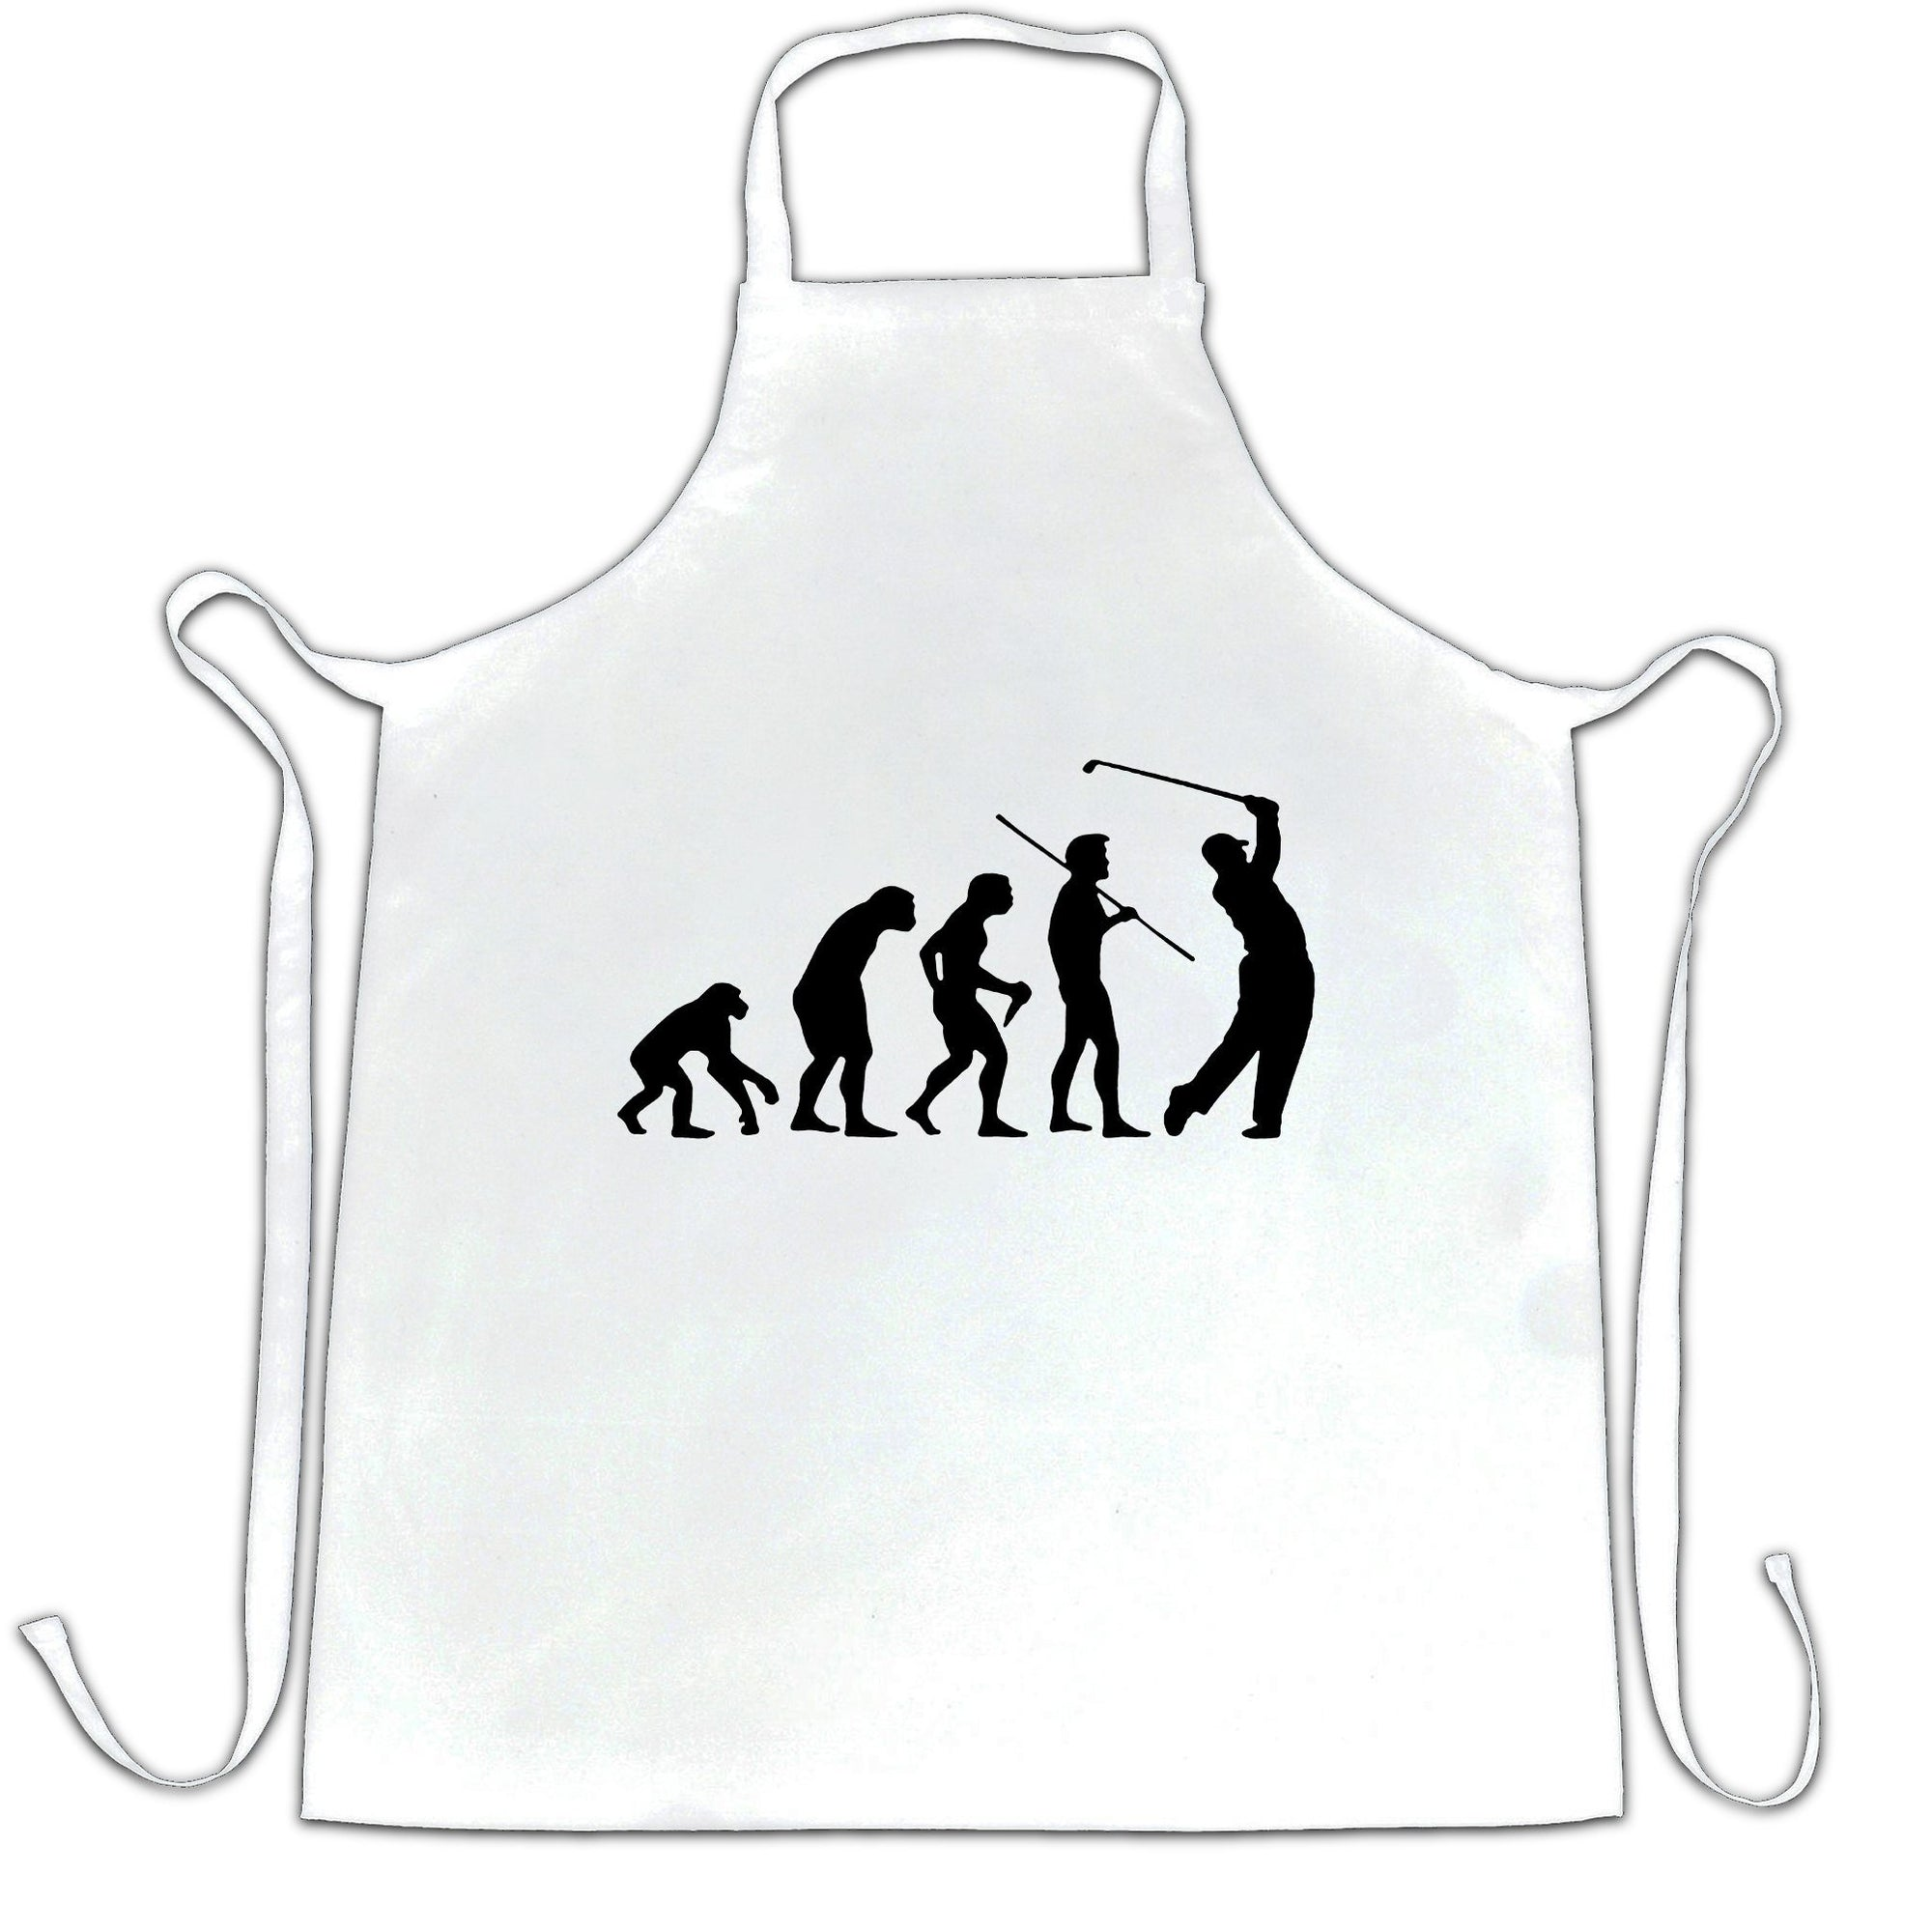 Novelty Golf Chef's Apron Evolution Of A Golfer